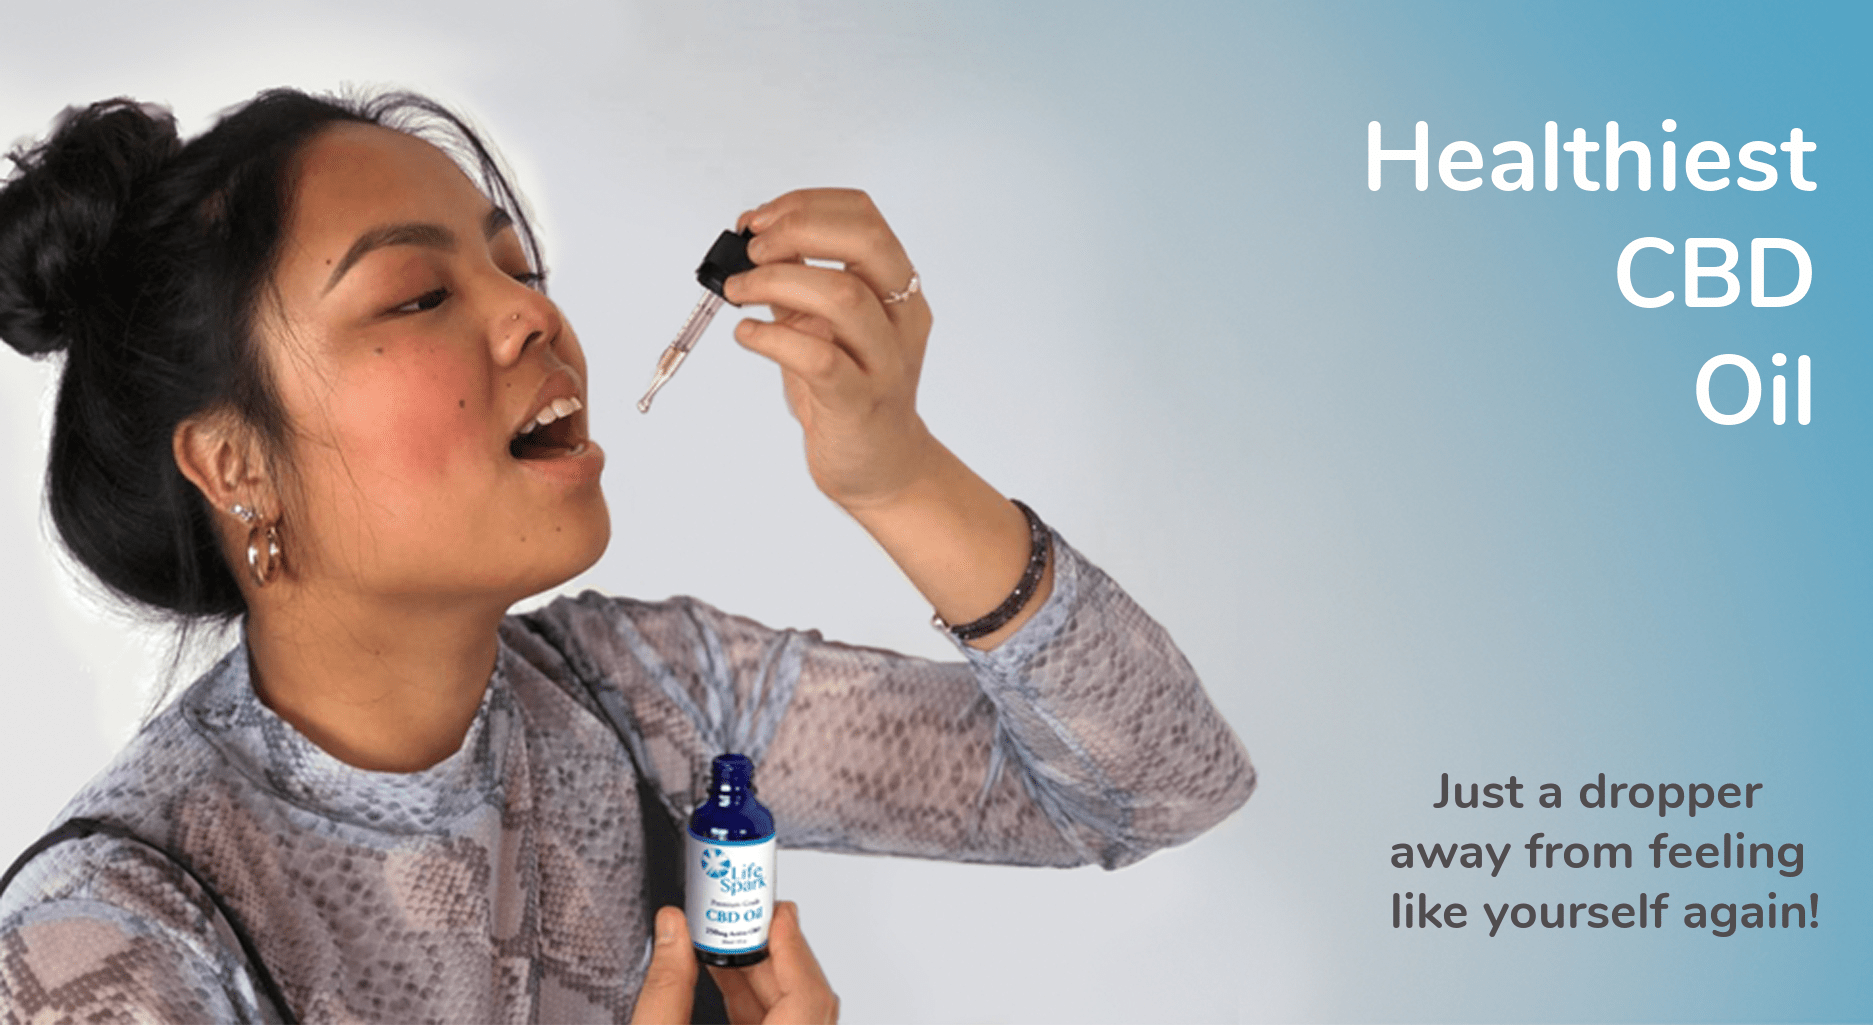 CBD Oil – Just a dropper away from feeling like yourself again.